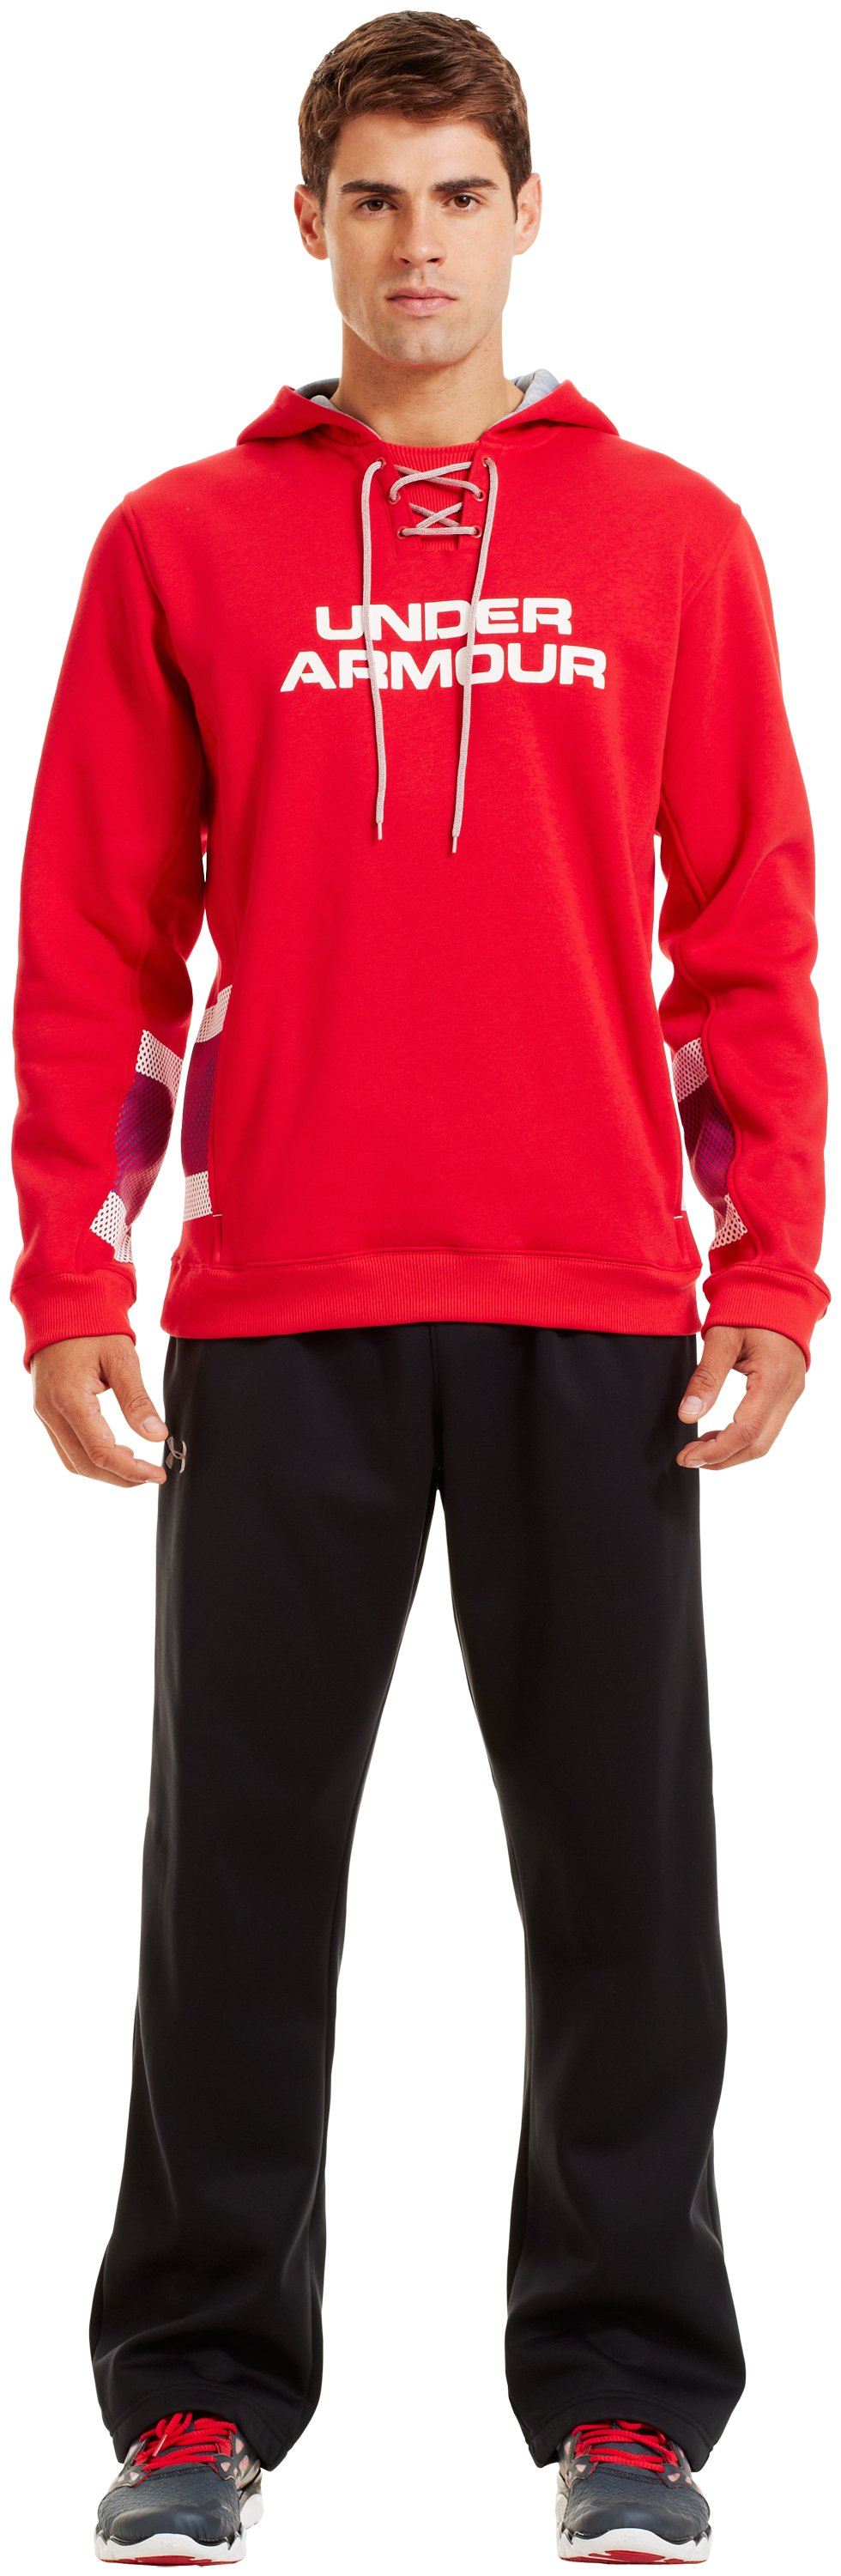 Men's Charged Cotton® Storm Chuck-A-Puck Hoodie, Red, Front